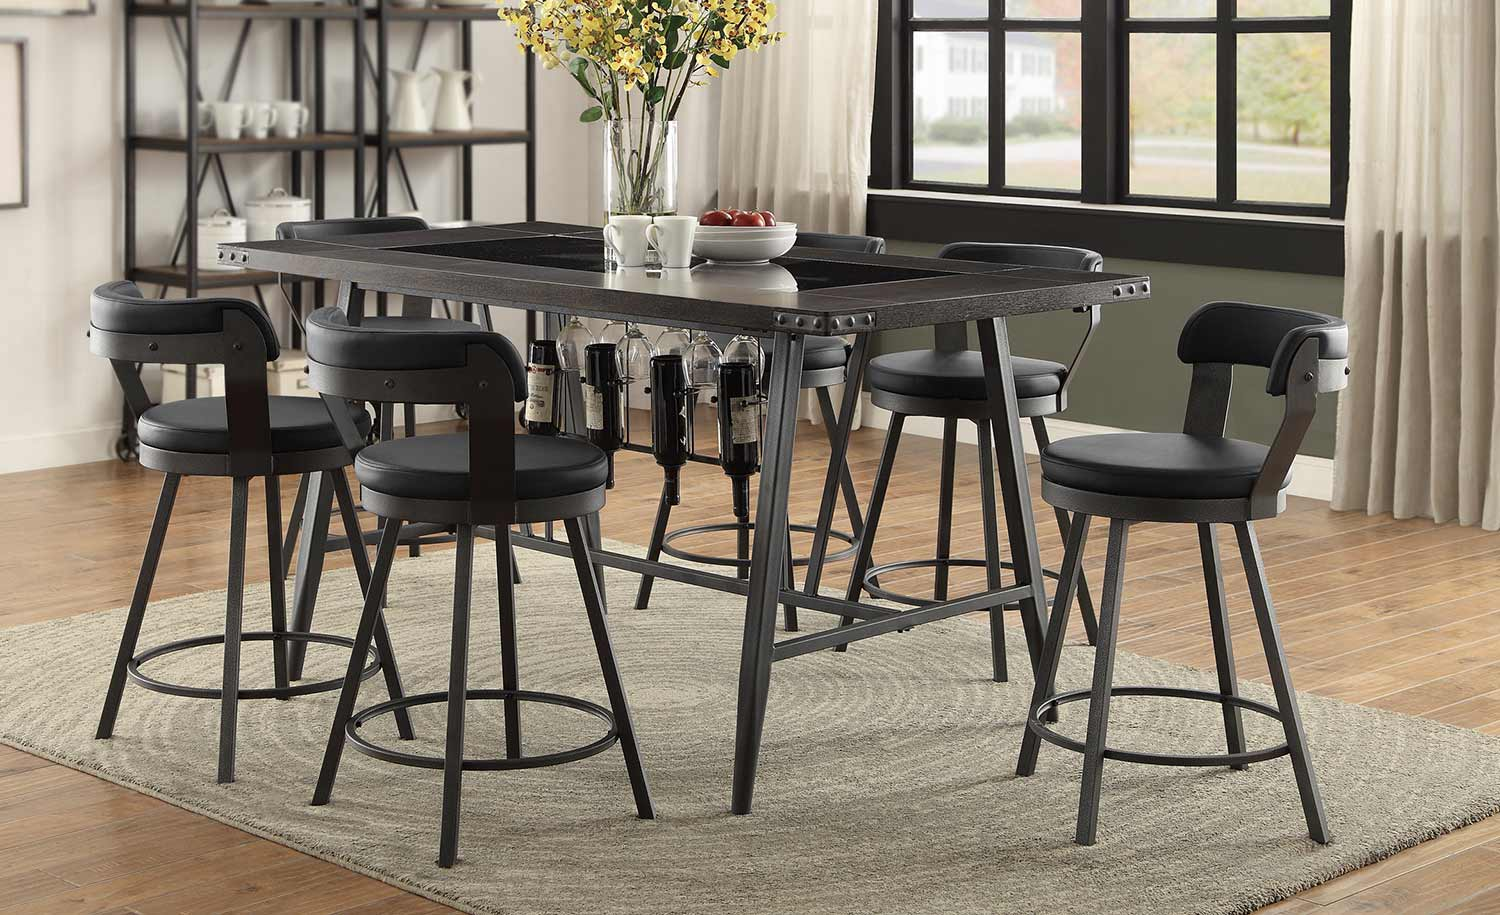 Homelegance Appert Counter Height Dining Set Black Black Bi Cast Vinyl 5566 Bk Din